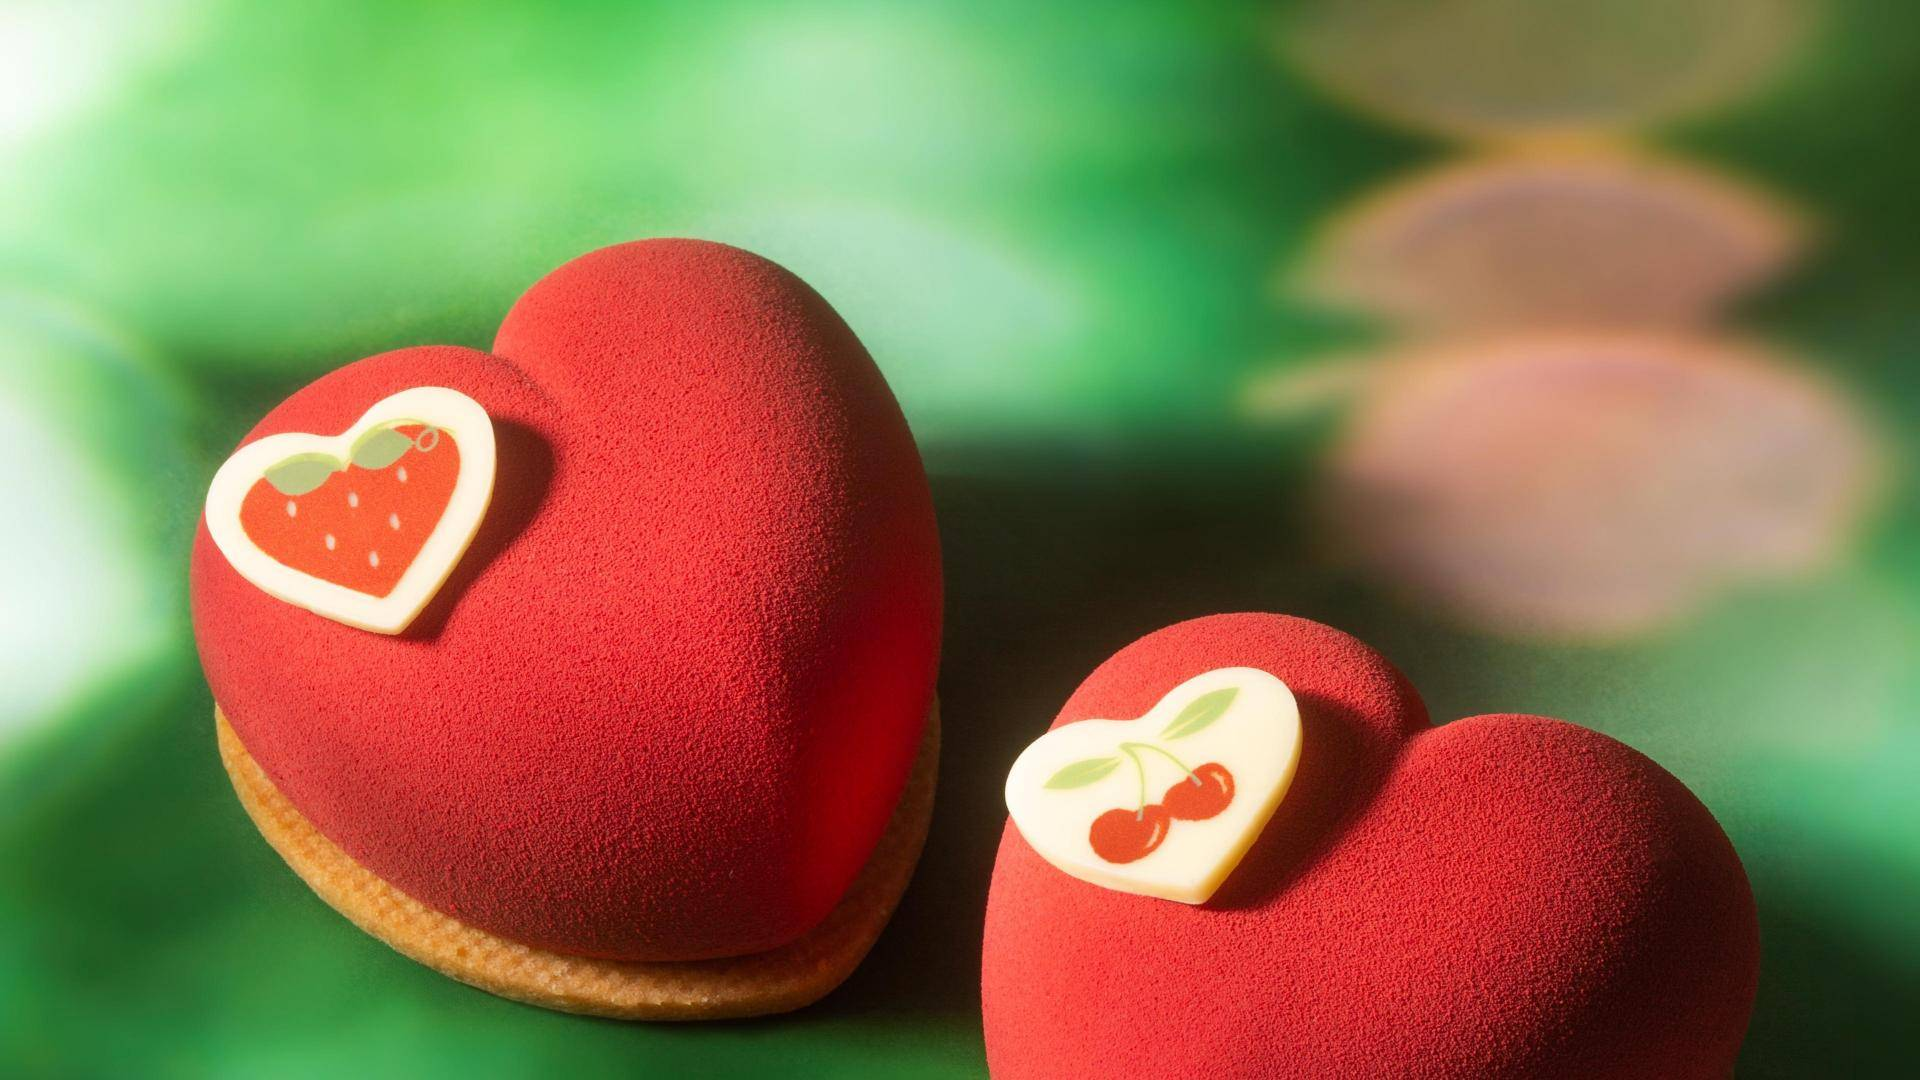 Heart shaped pastries with white chocolate plaques